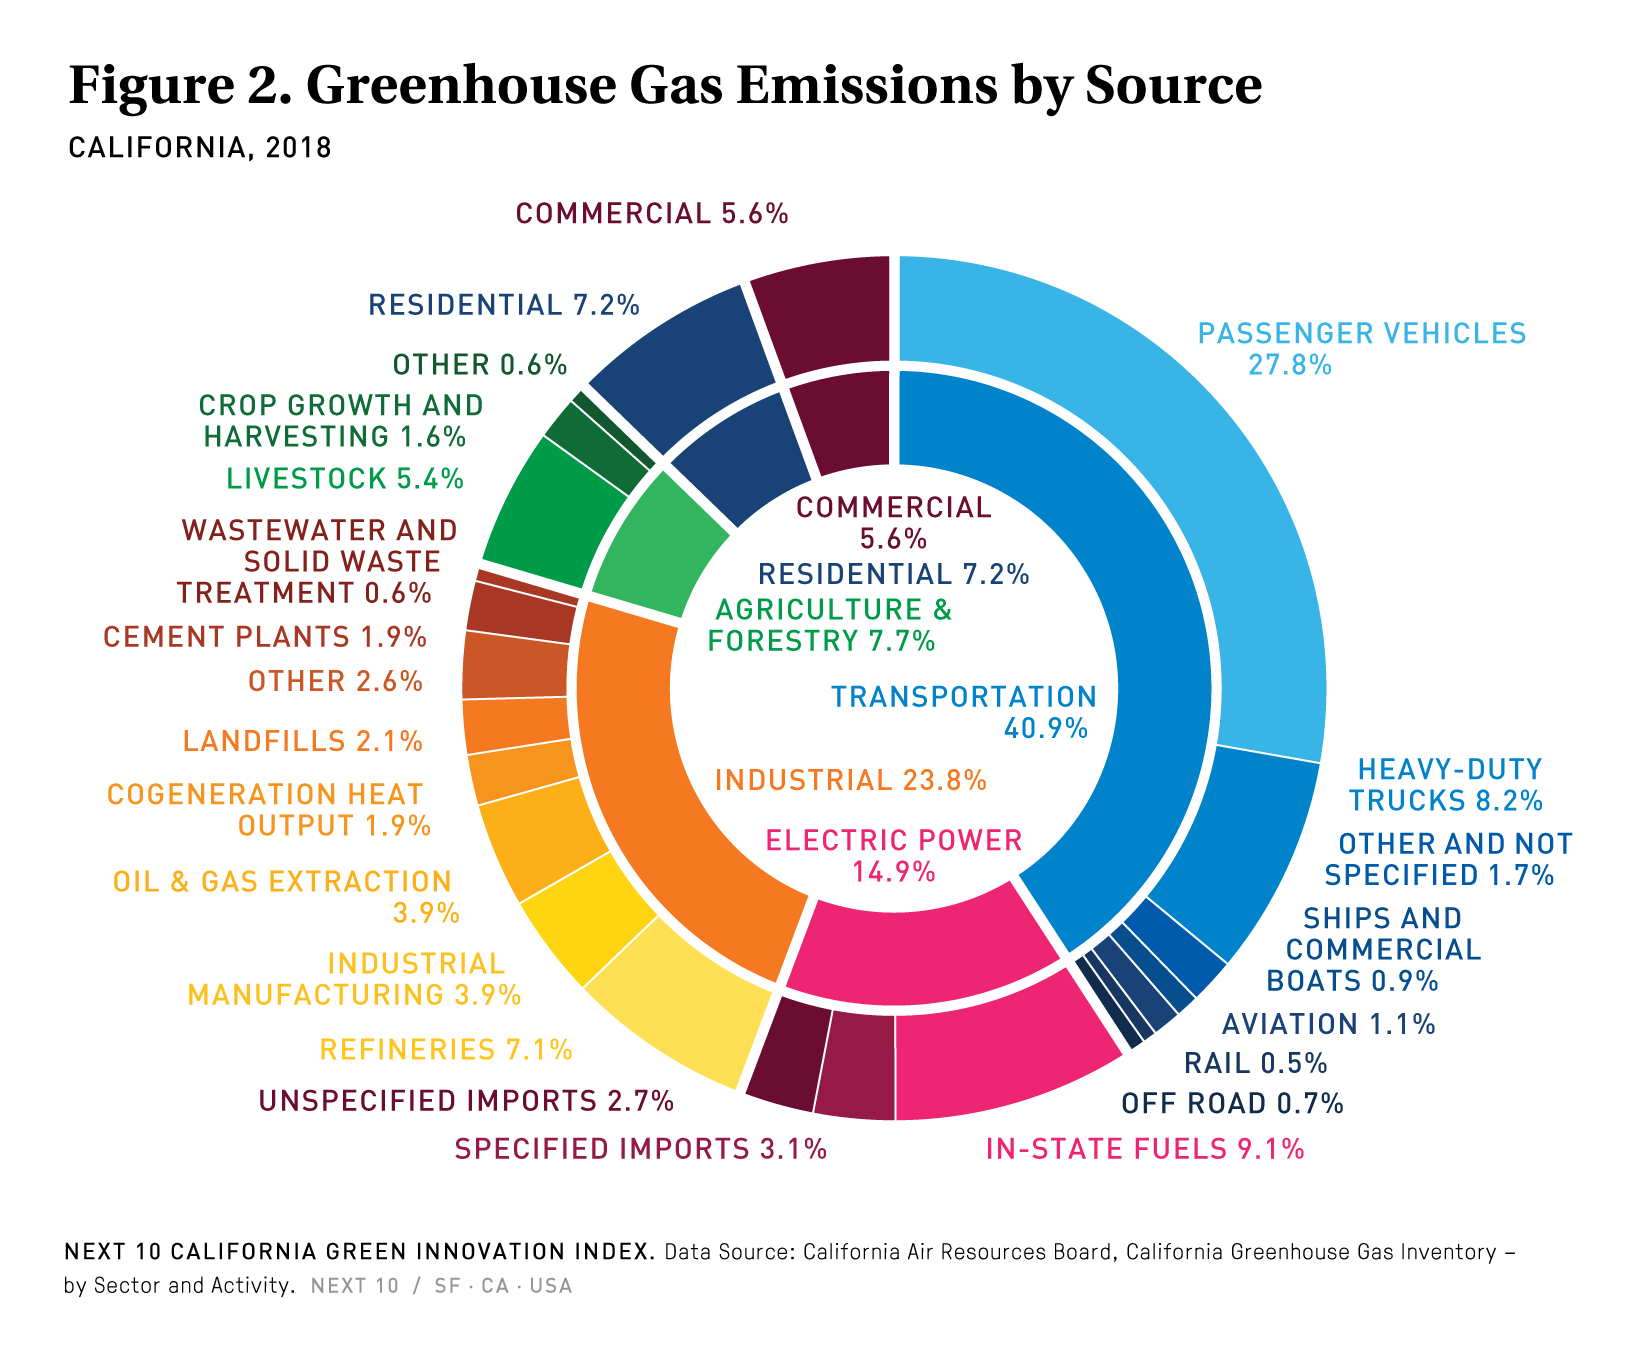 Figure 2. Greenhouse Gas Emissions by Source